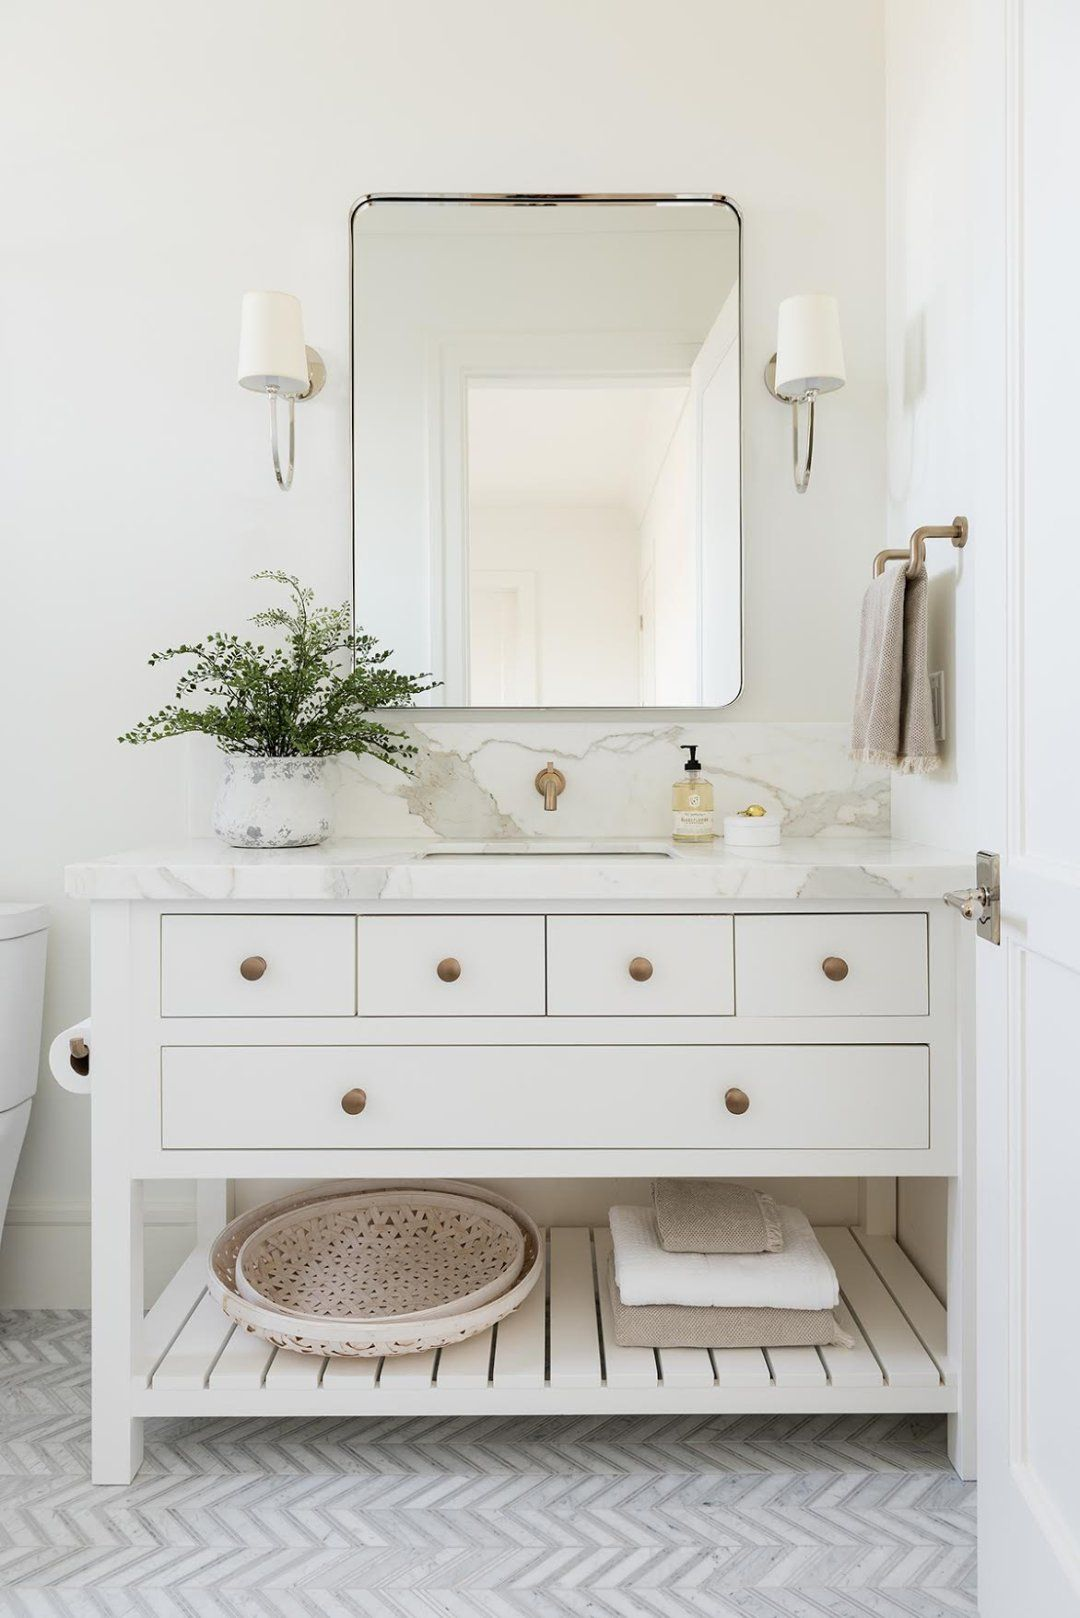 California Traditional Home Tour Bathroom Interior Bathrooms